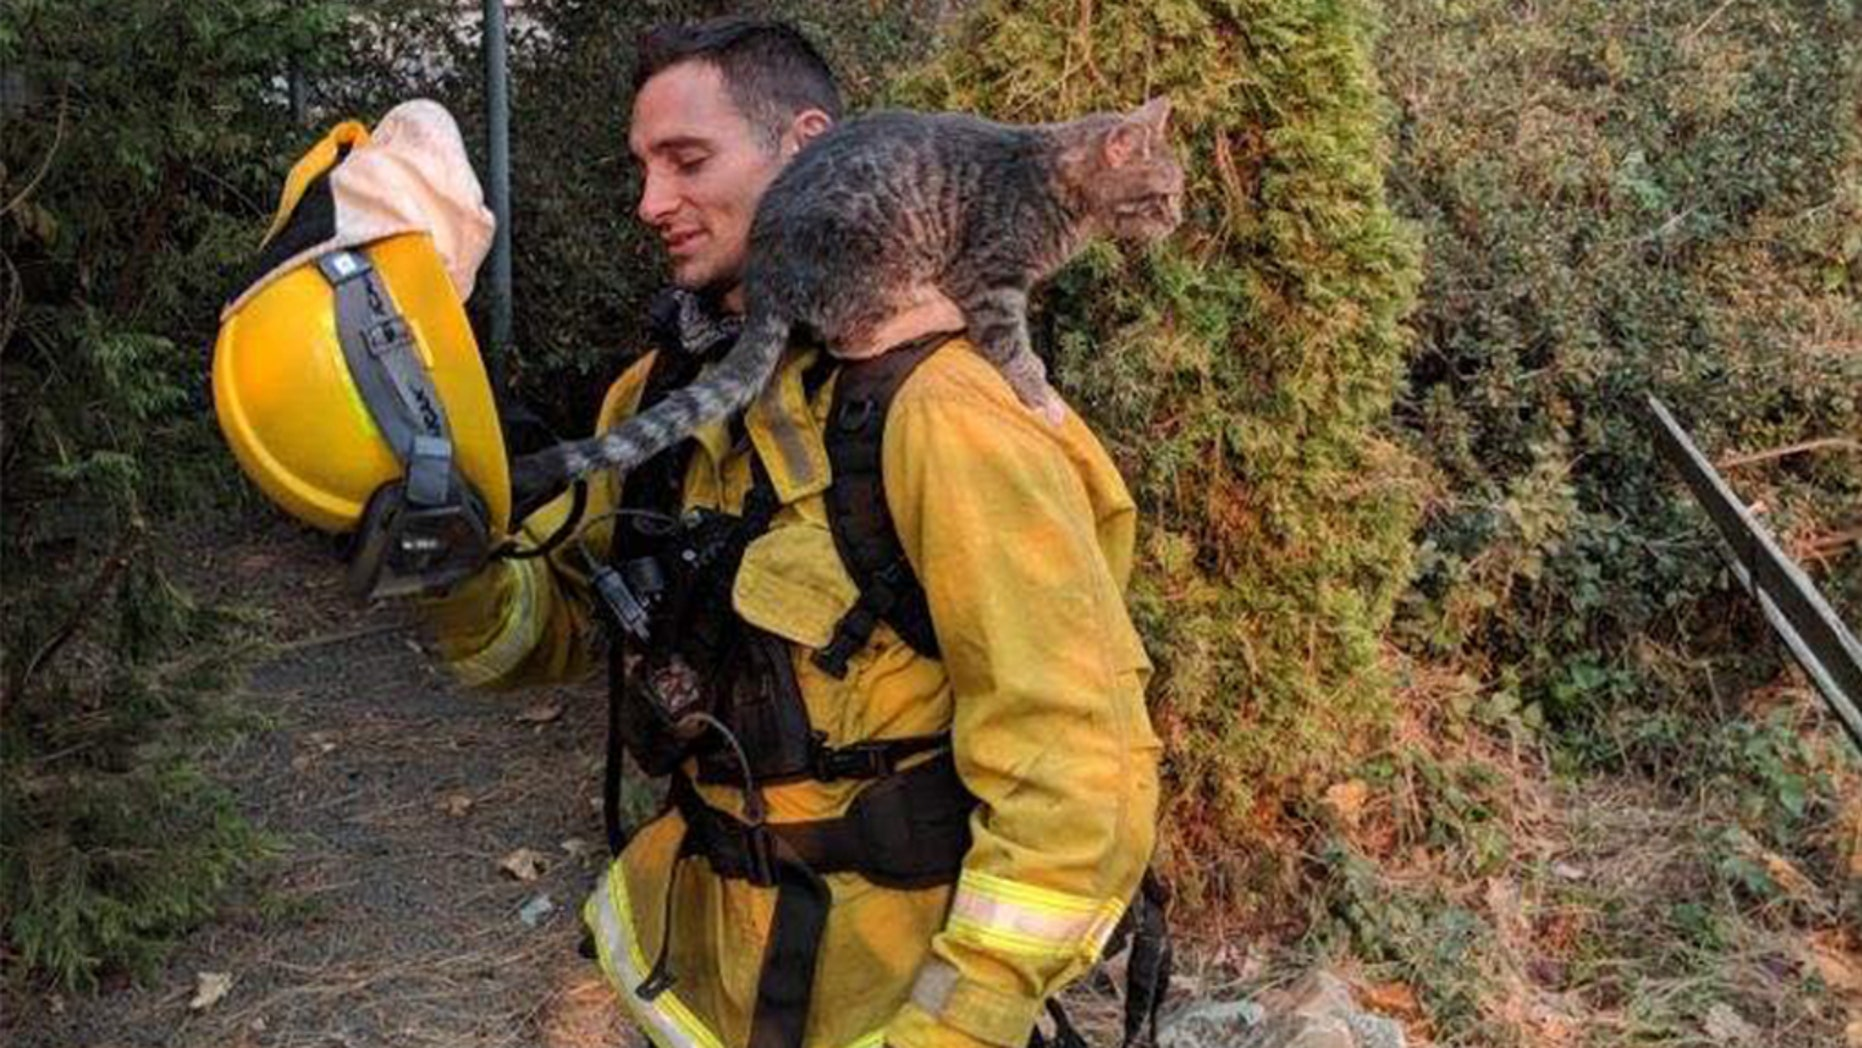 """Foster"" the cat was rescued on Monday after being burned in California's Camp Fire, the department wrote on Facebook."